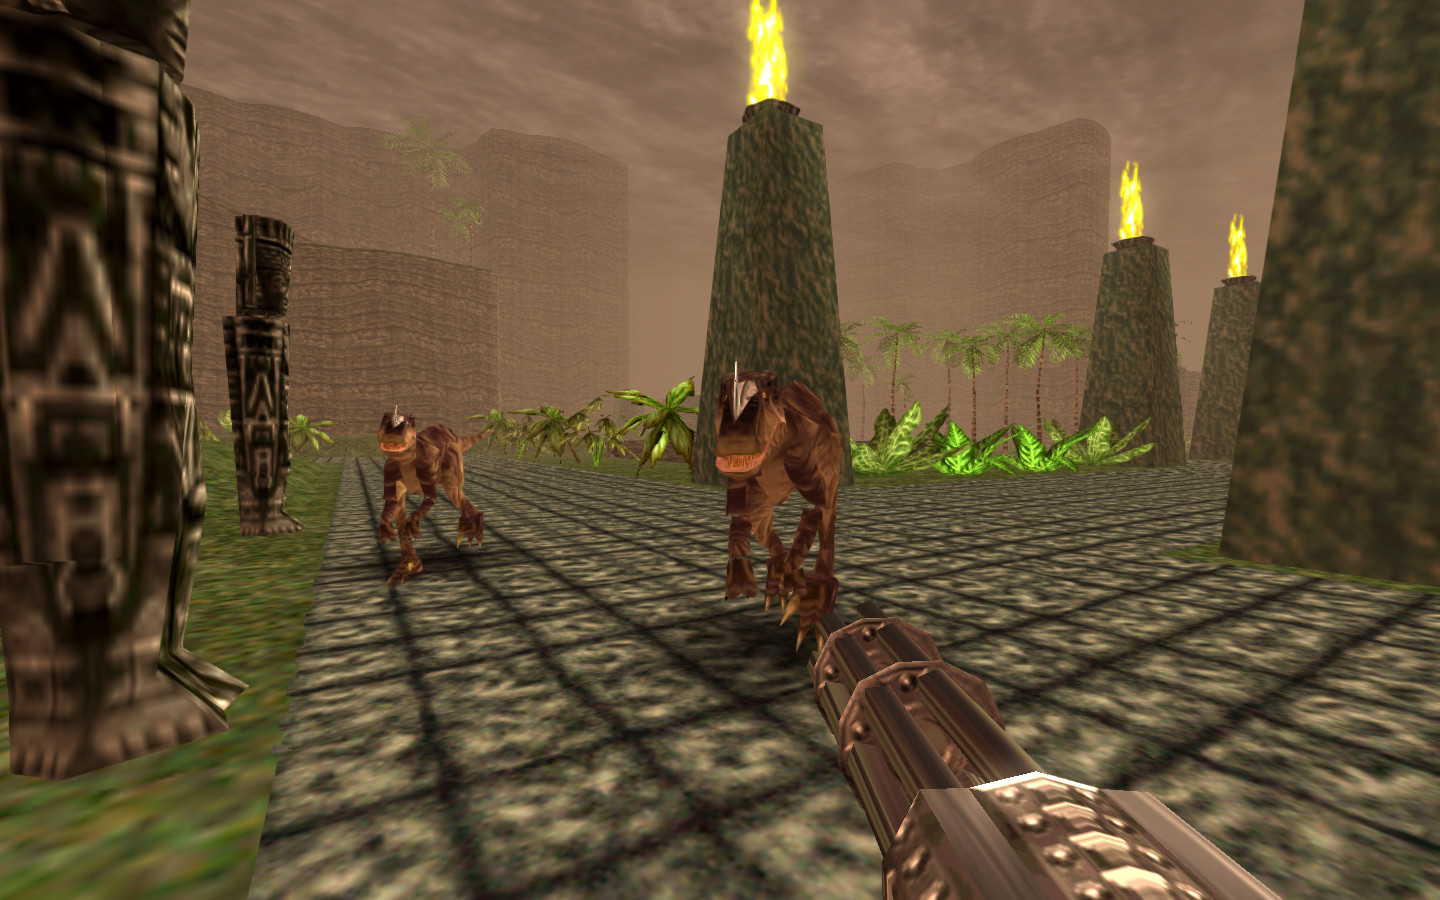 turok source code will be sold on ebay soon thanks to lucky